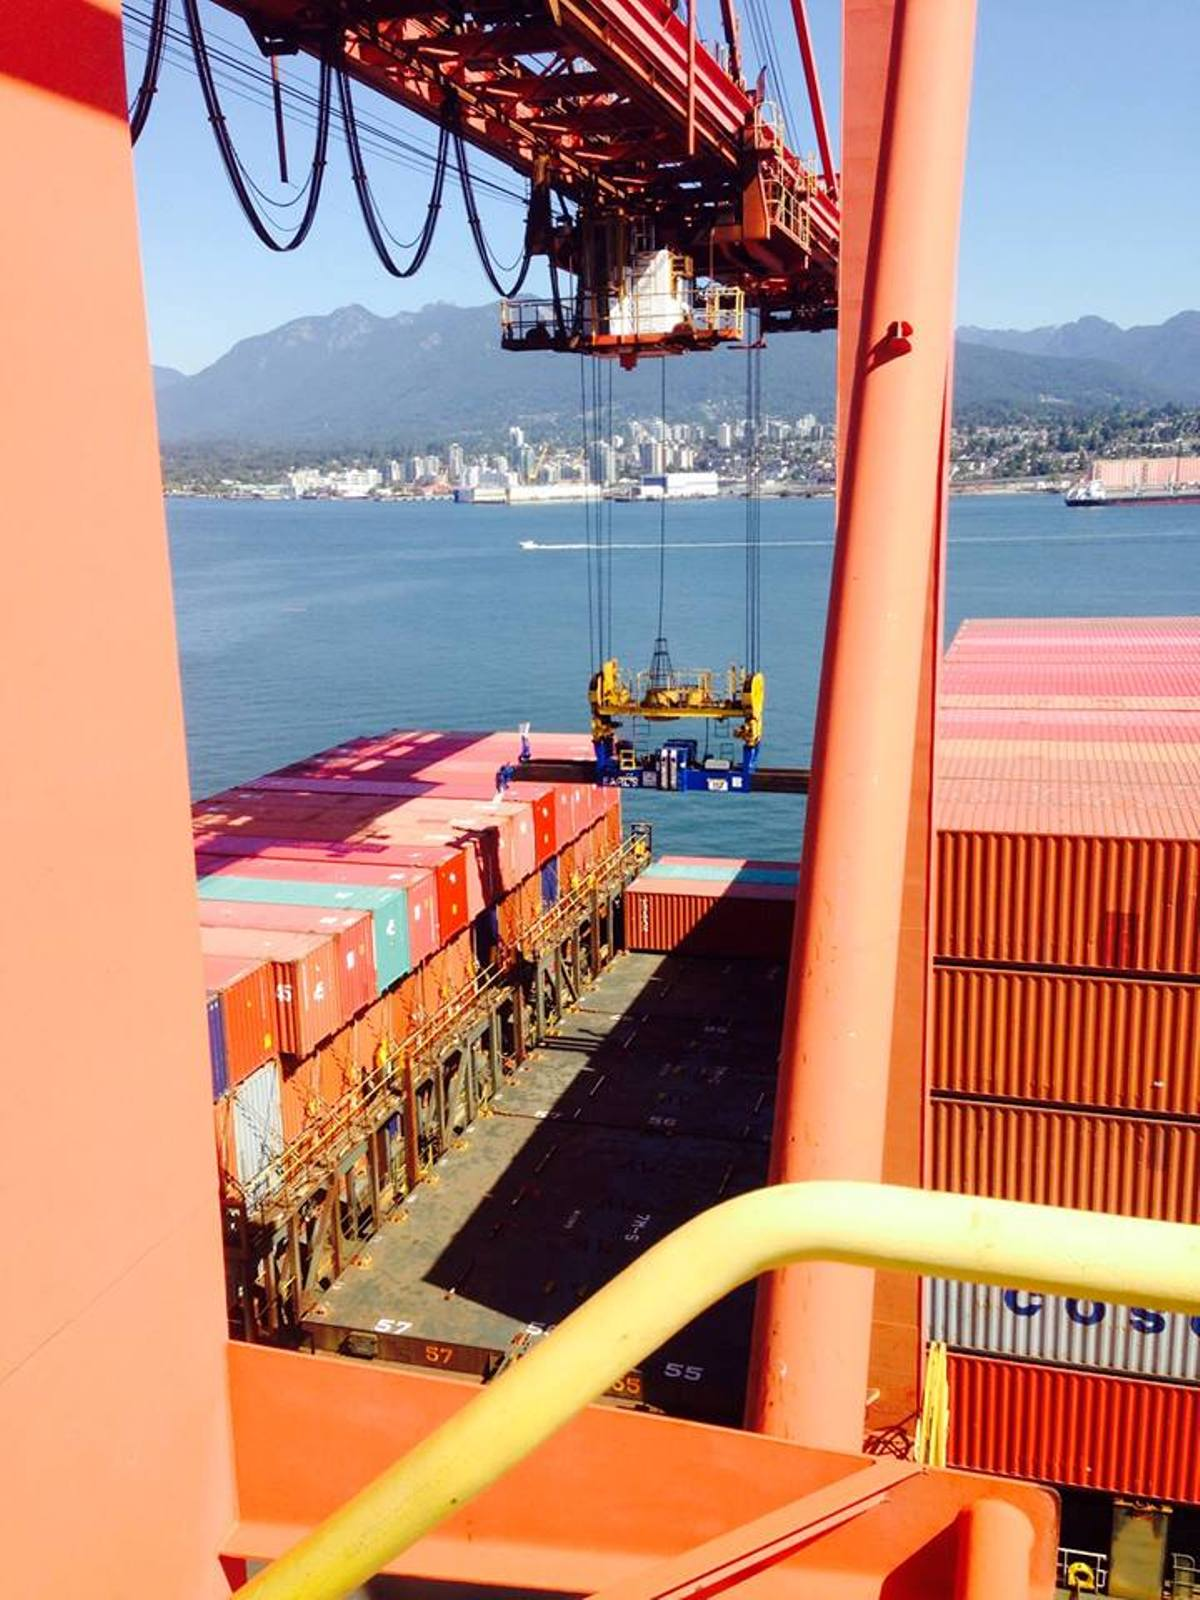 Nour Bishouty - Loading containers at Port Vancouver - 04